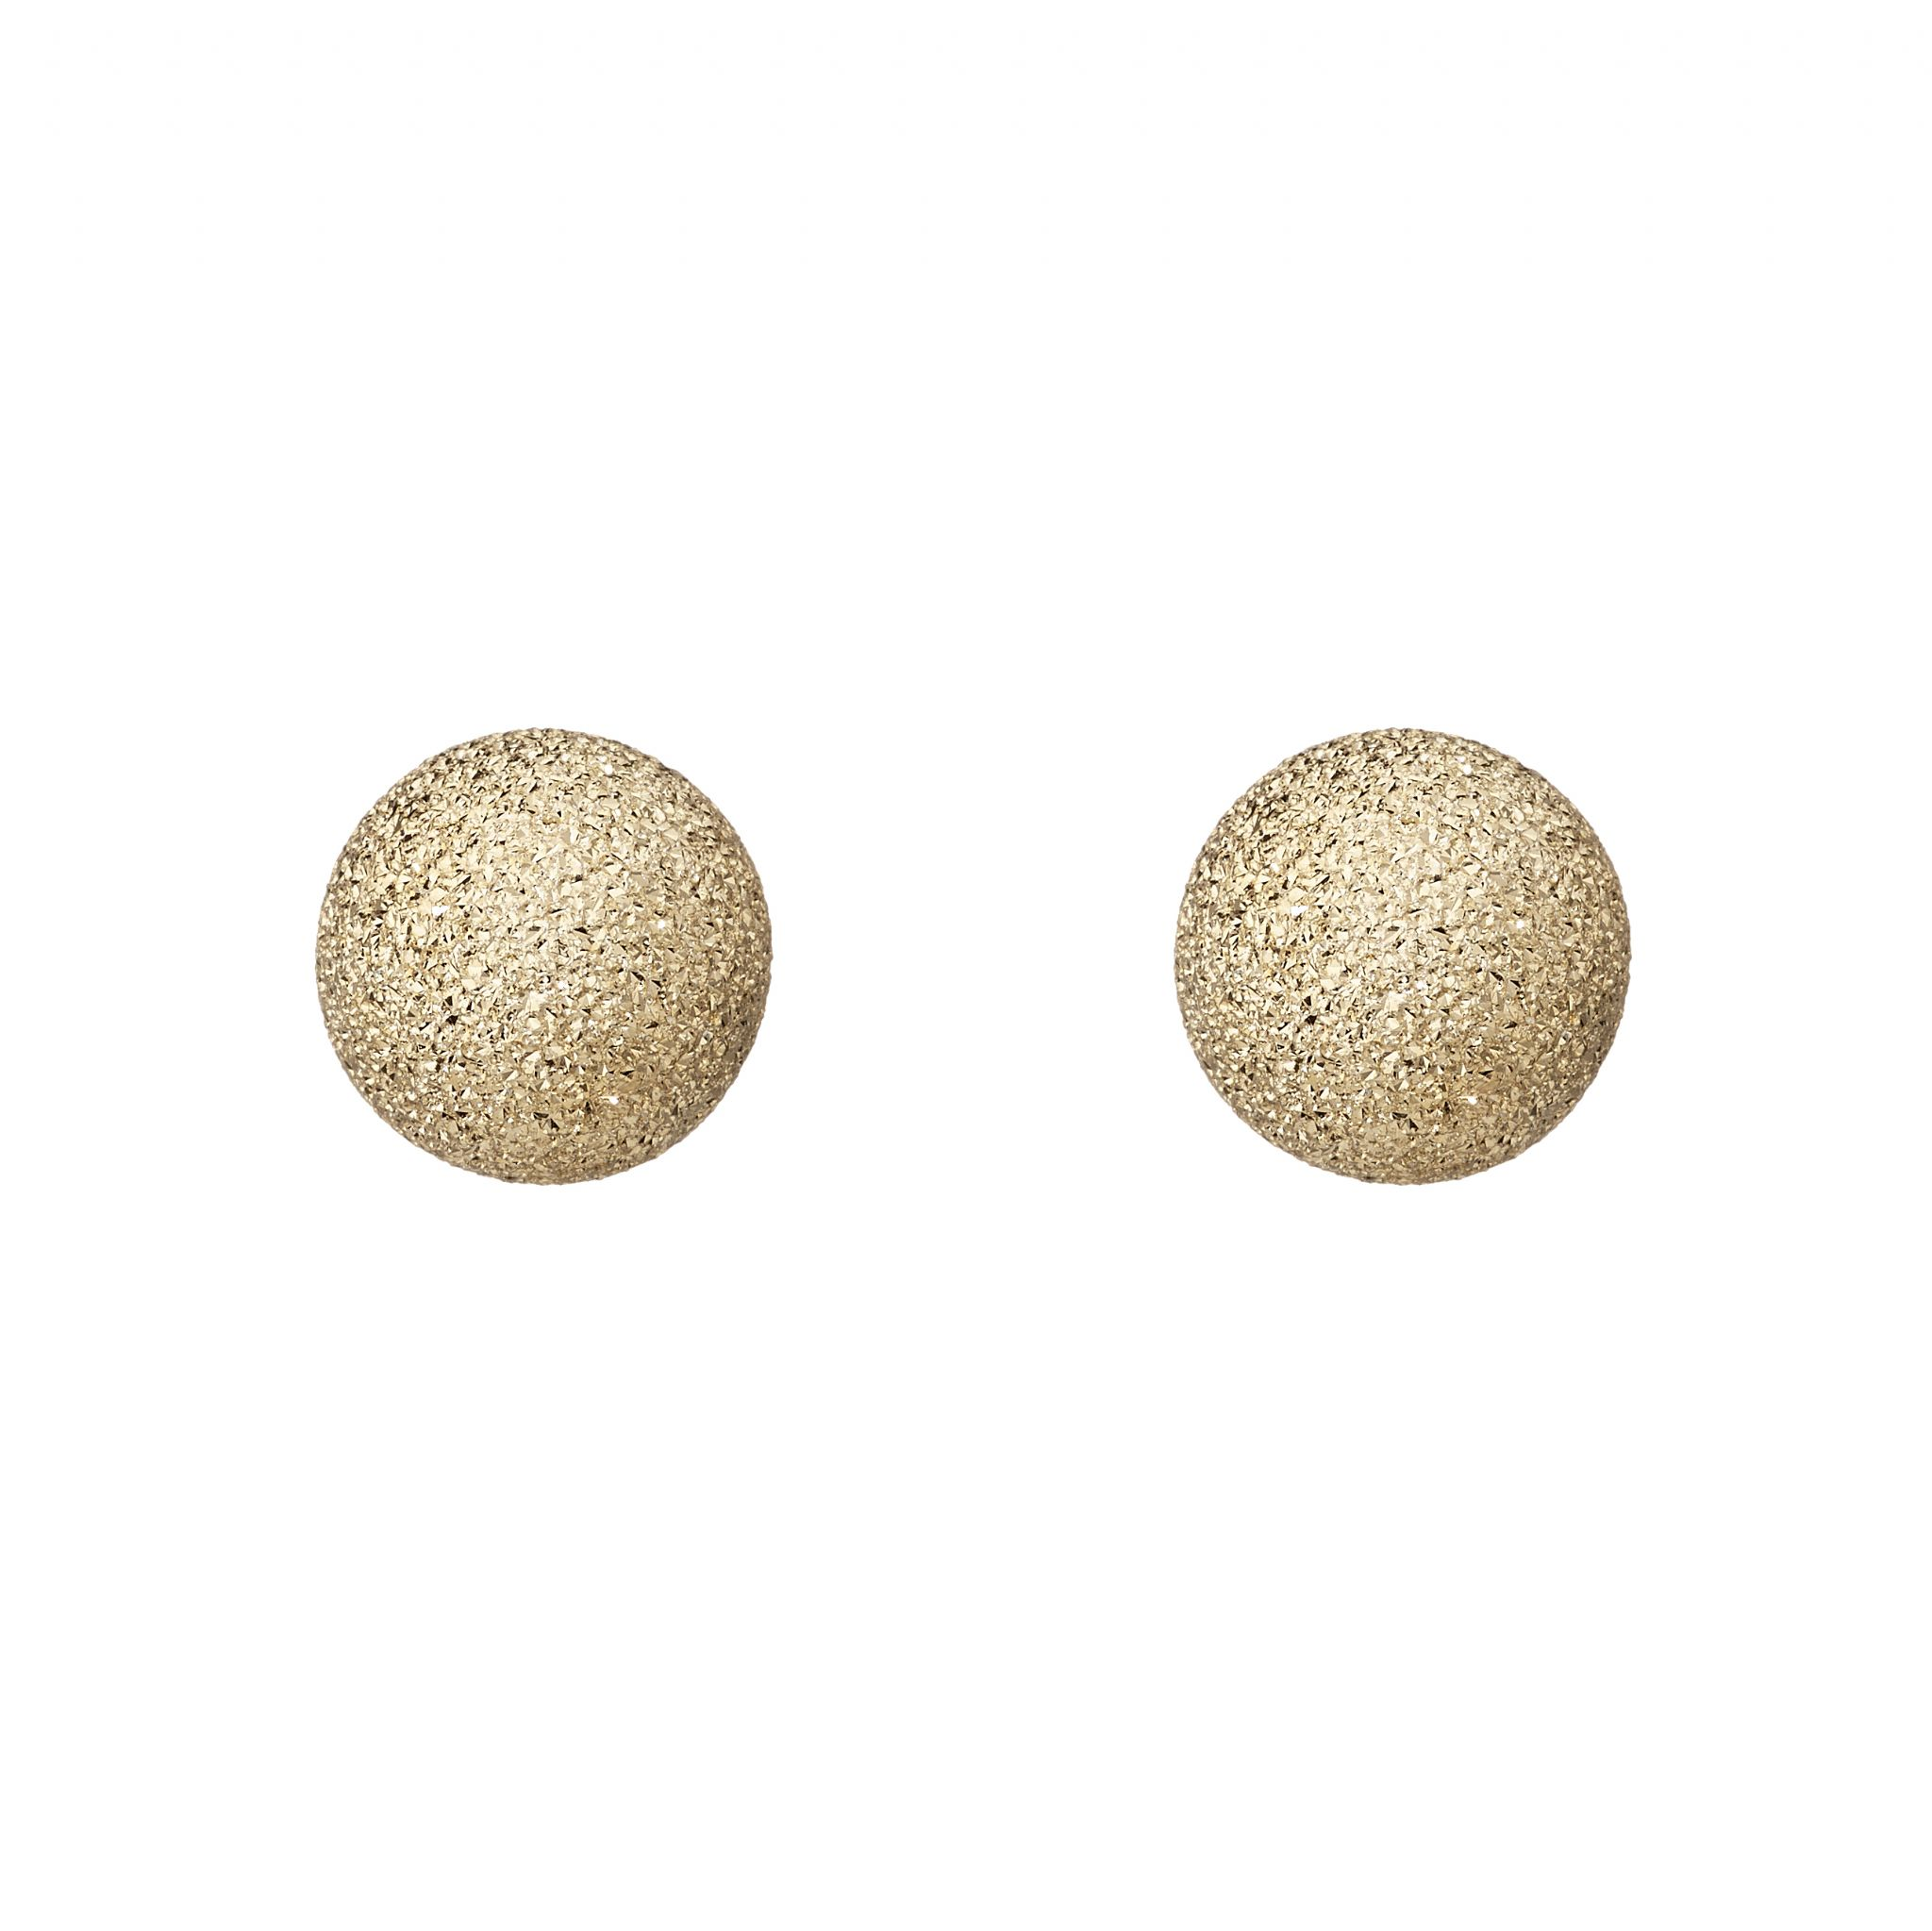 pearl moda faux ben and large loading earrings gold plated by operandi amun